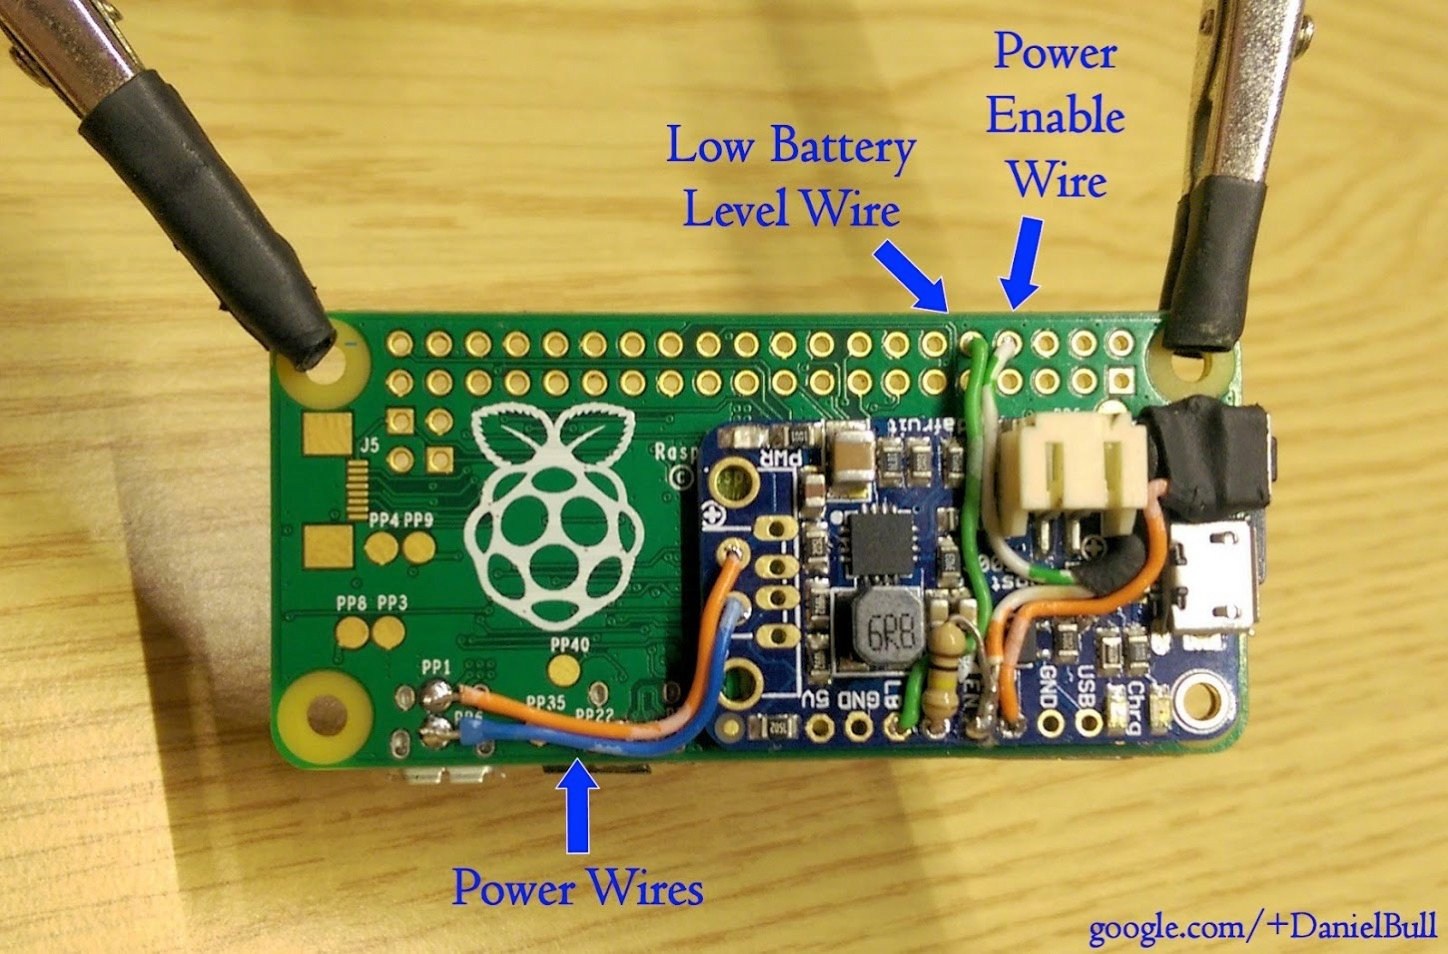 How To Run A Pi Zero And Other Pis From Lipo Including Low Single Cell Voltage Monitor Circuit Diagram Battery Raspberry Piday Raspberypi Wiring